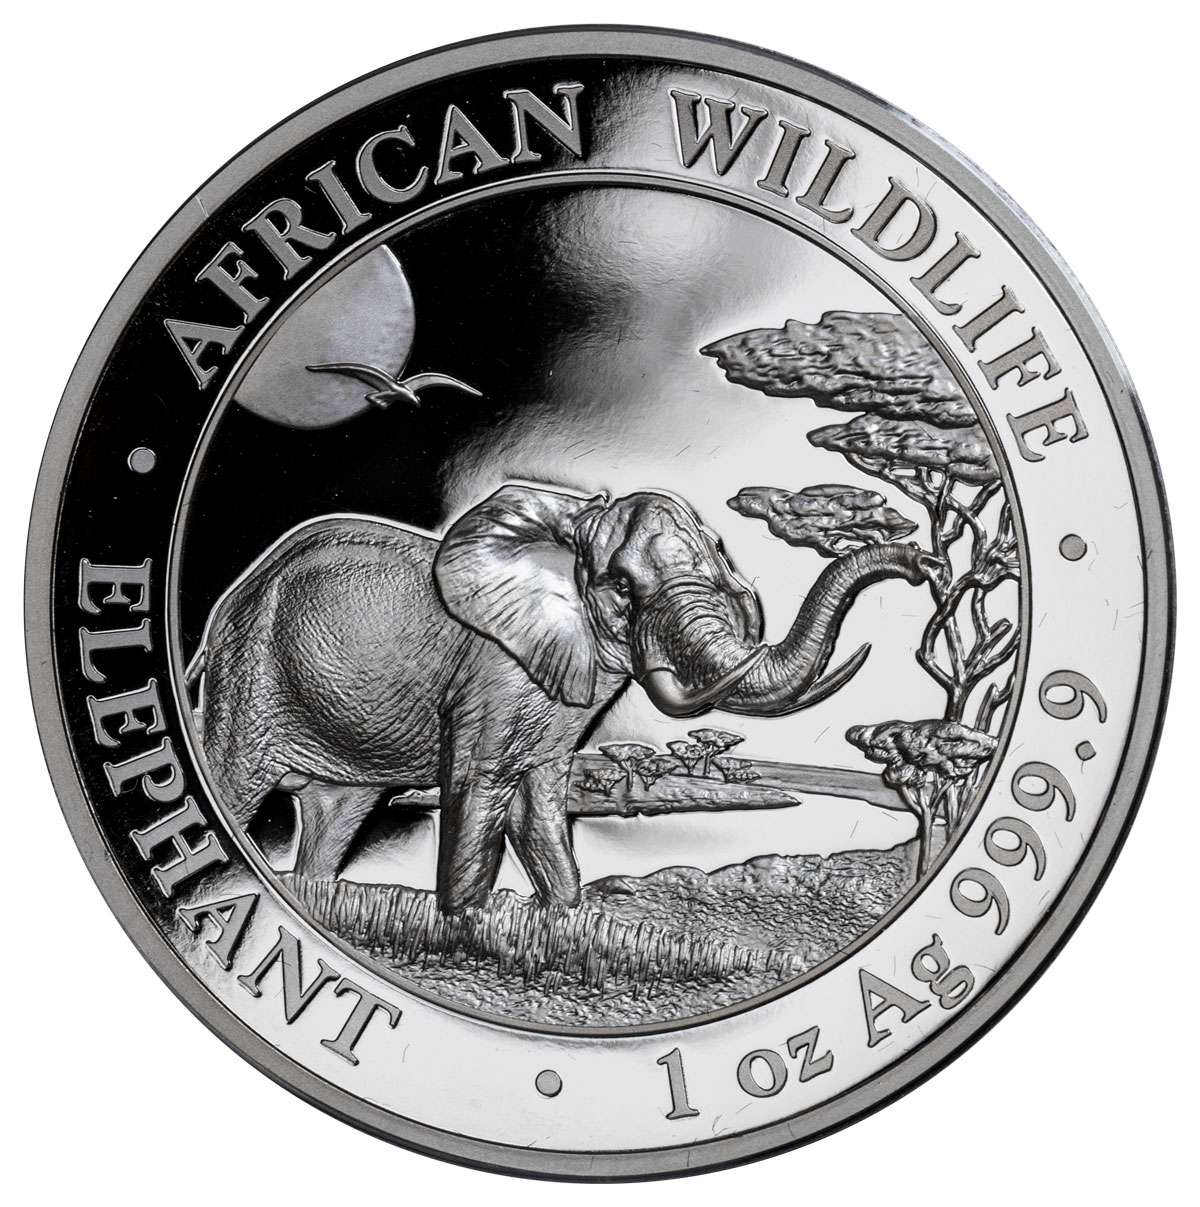 2019 Somalia 1 oz High Relief Silver Elephant Proof Sh100 Coin GEM Proof OGP